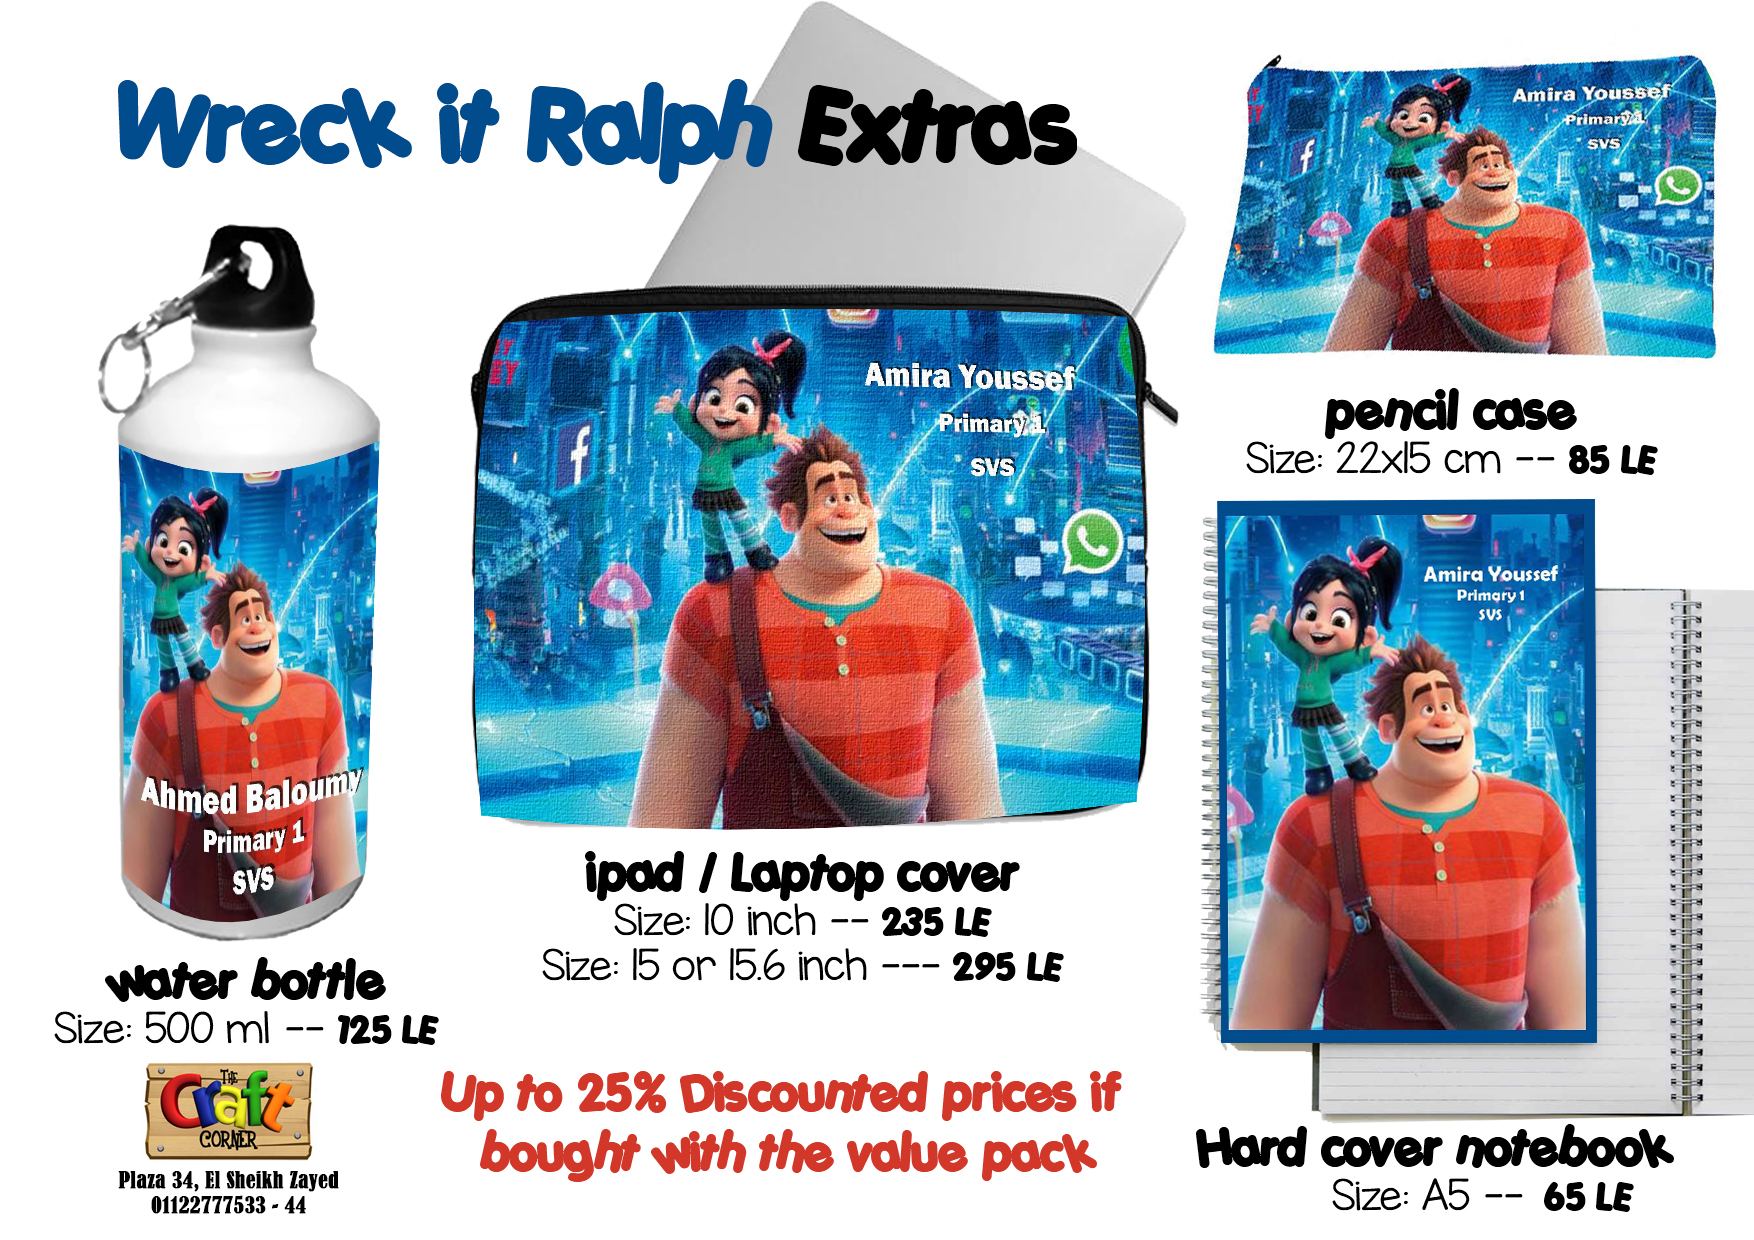 wreck it ralph Extras